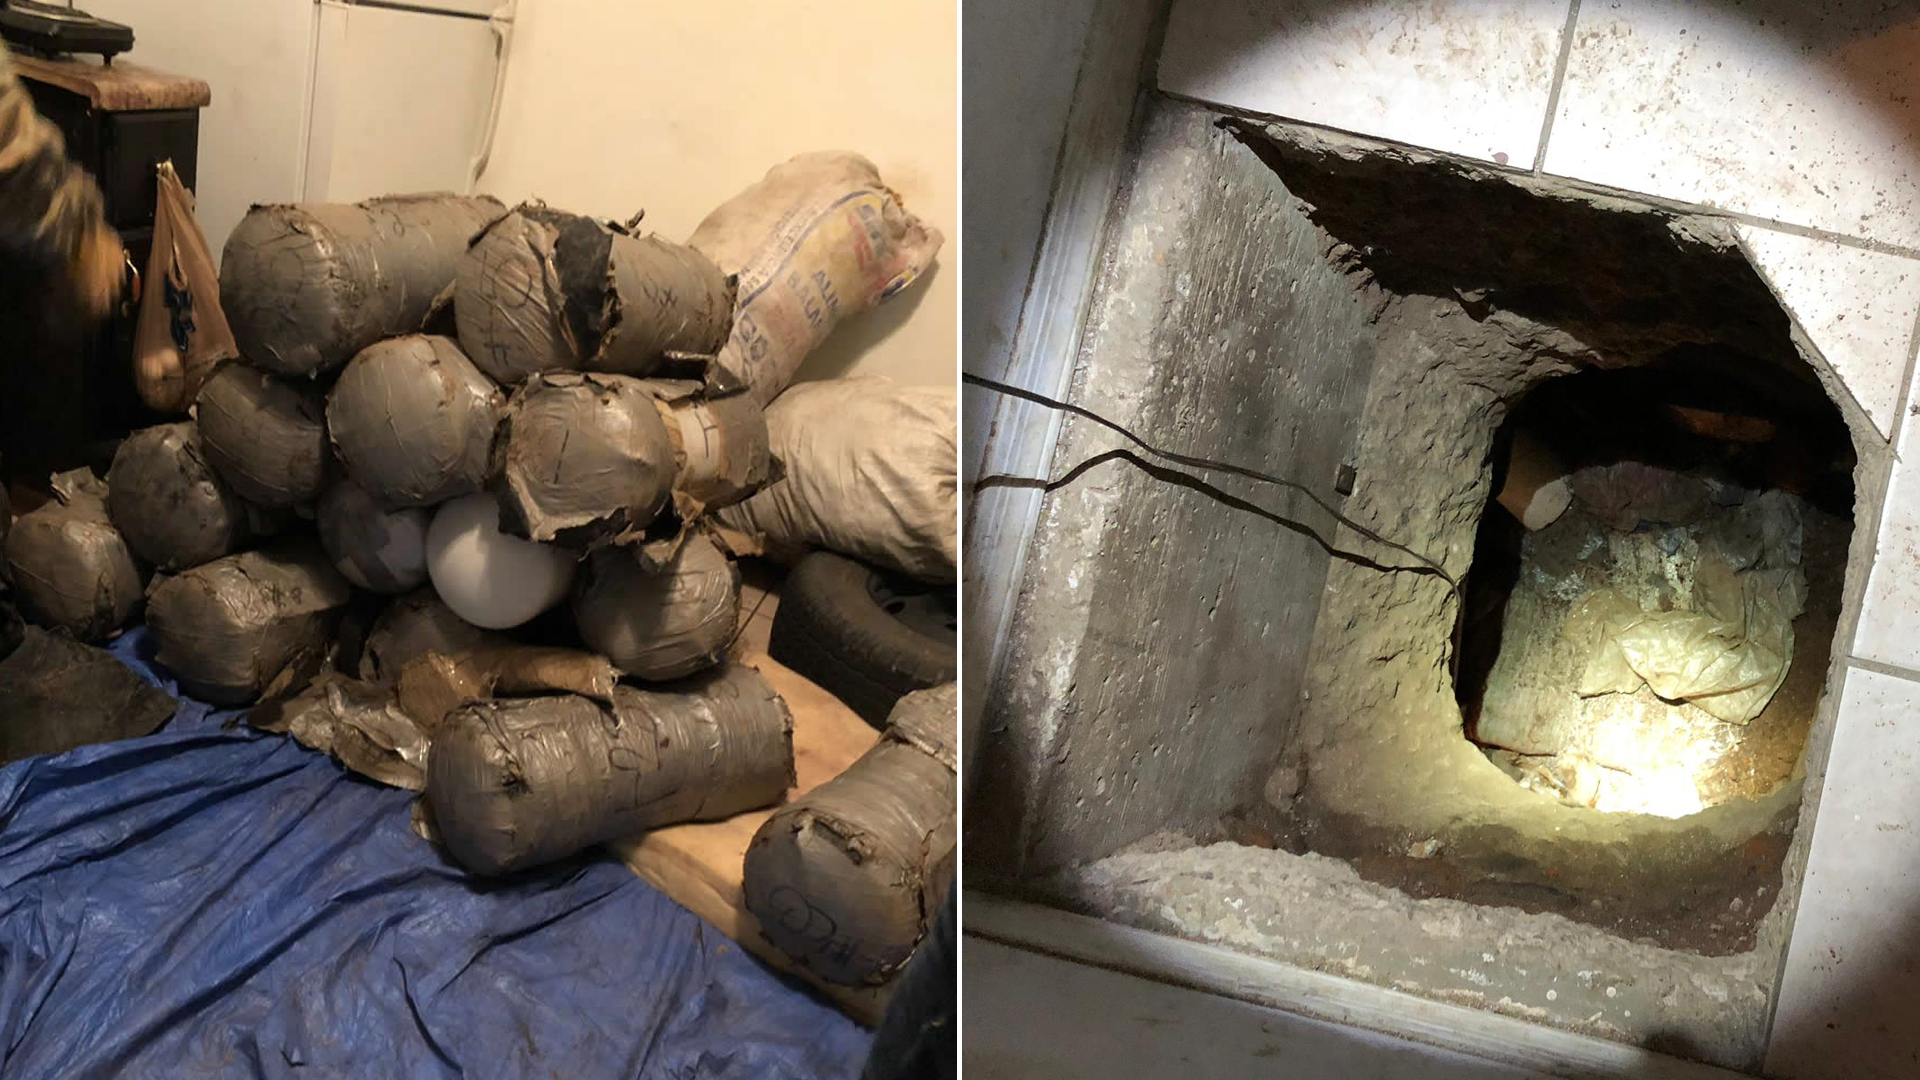 Narcotics and a cross-border tunnel discovered by special agents in Nogales, Arizona, are seen in images released Dec. 19, 2019, by U.S. Immigration and Customs Enforcement.